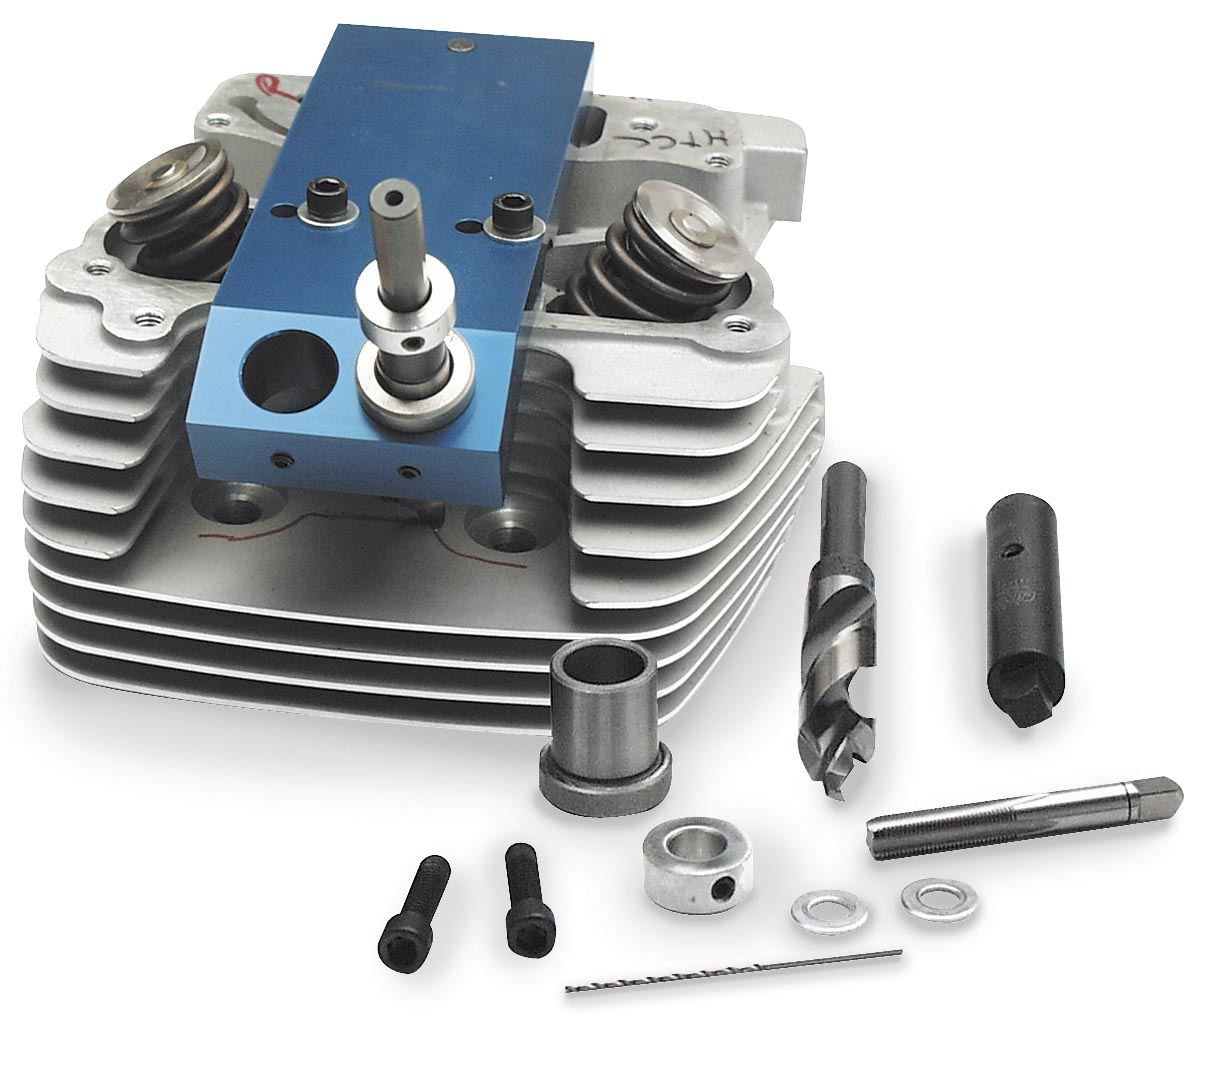 Jims Force Flow: Jims Compression Release Valve Tool